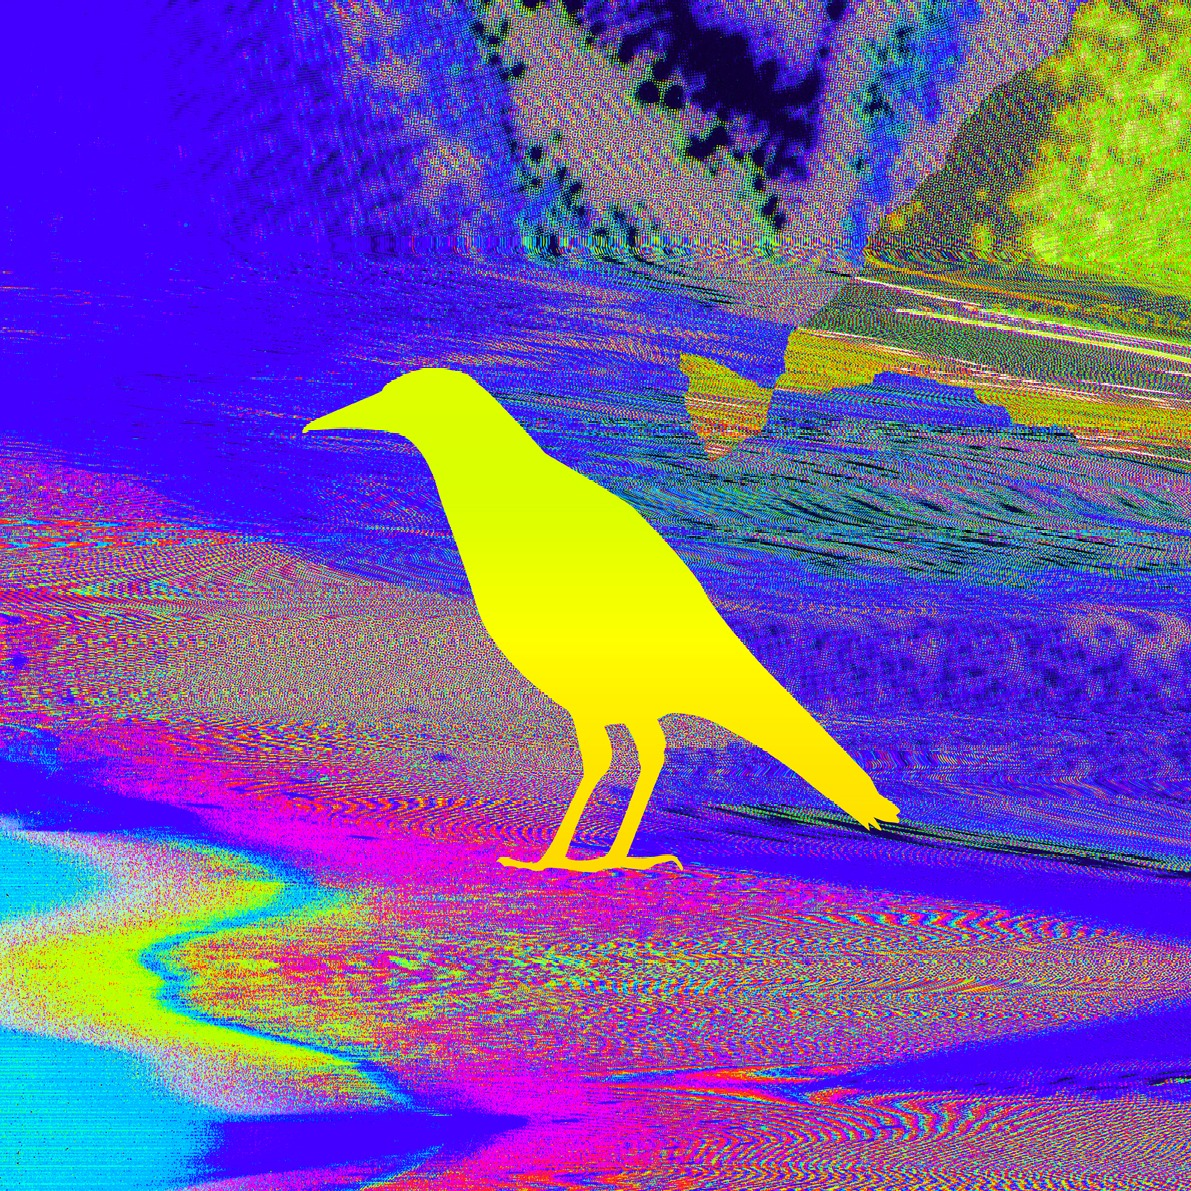 Magpie Yellow Blue 72dpi_edited